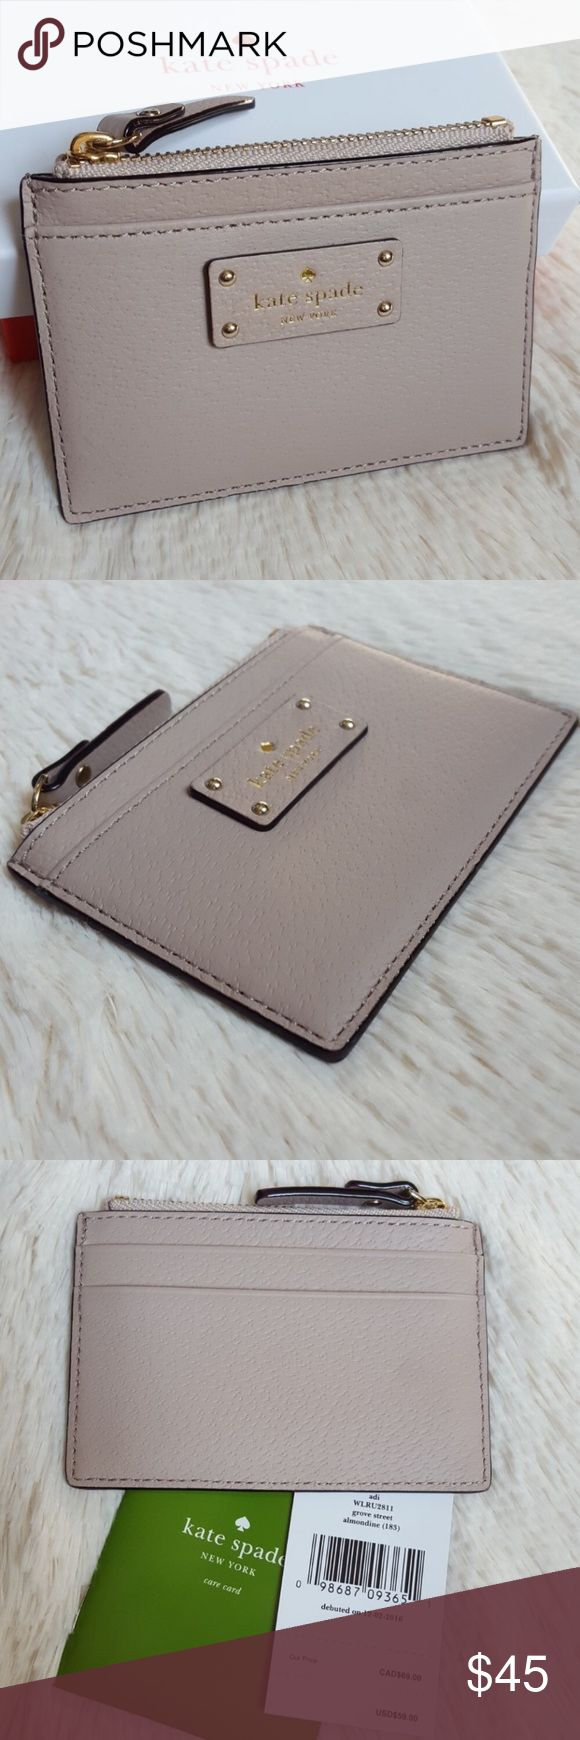 """Kate Spade Grove Street Almondine Leather Zip-Card 100% Authentic Kate Spade ♠️ - Kate Spade logo on front.  - 4.5 """" wide x 3.25"""" high.  - 2pockets in the back.  **REPOSH♠️PRICE IS FIRM FOR THIS ONE AS IT DIDNT MATCH MY PURSE, SO I'M JUST TRYING TO GET BACK WHAT I PAID** kate spade Bags Wallets"""